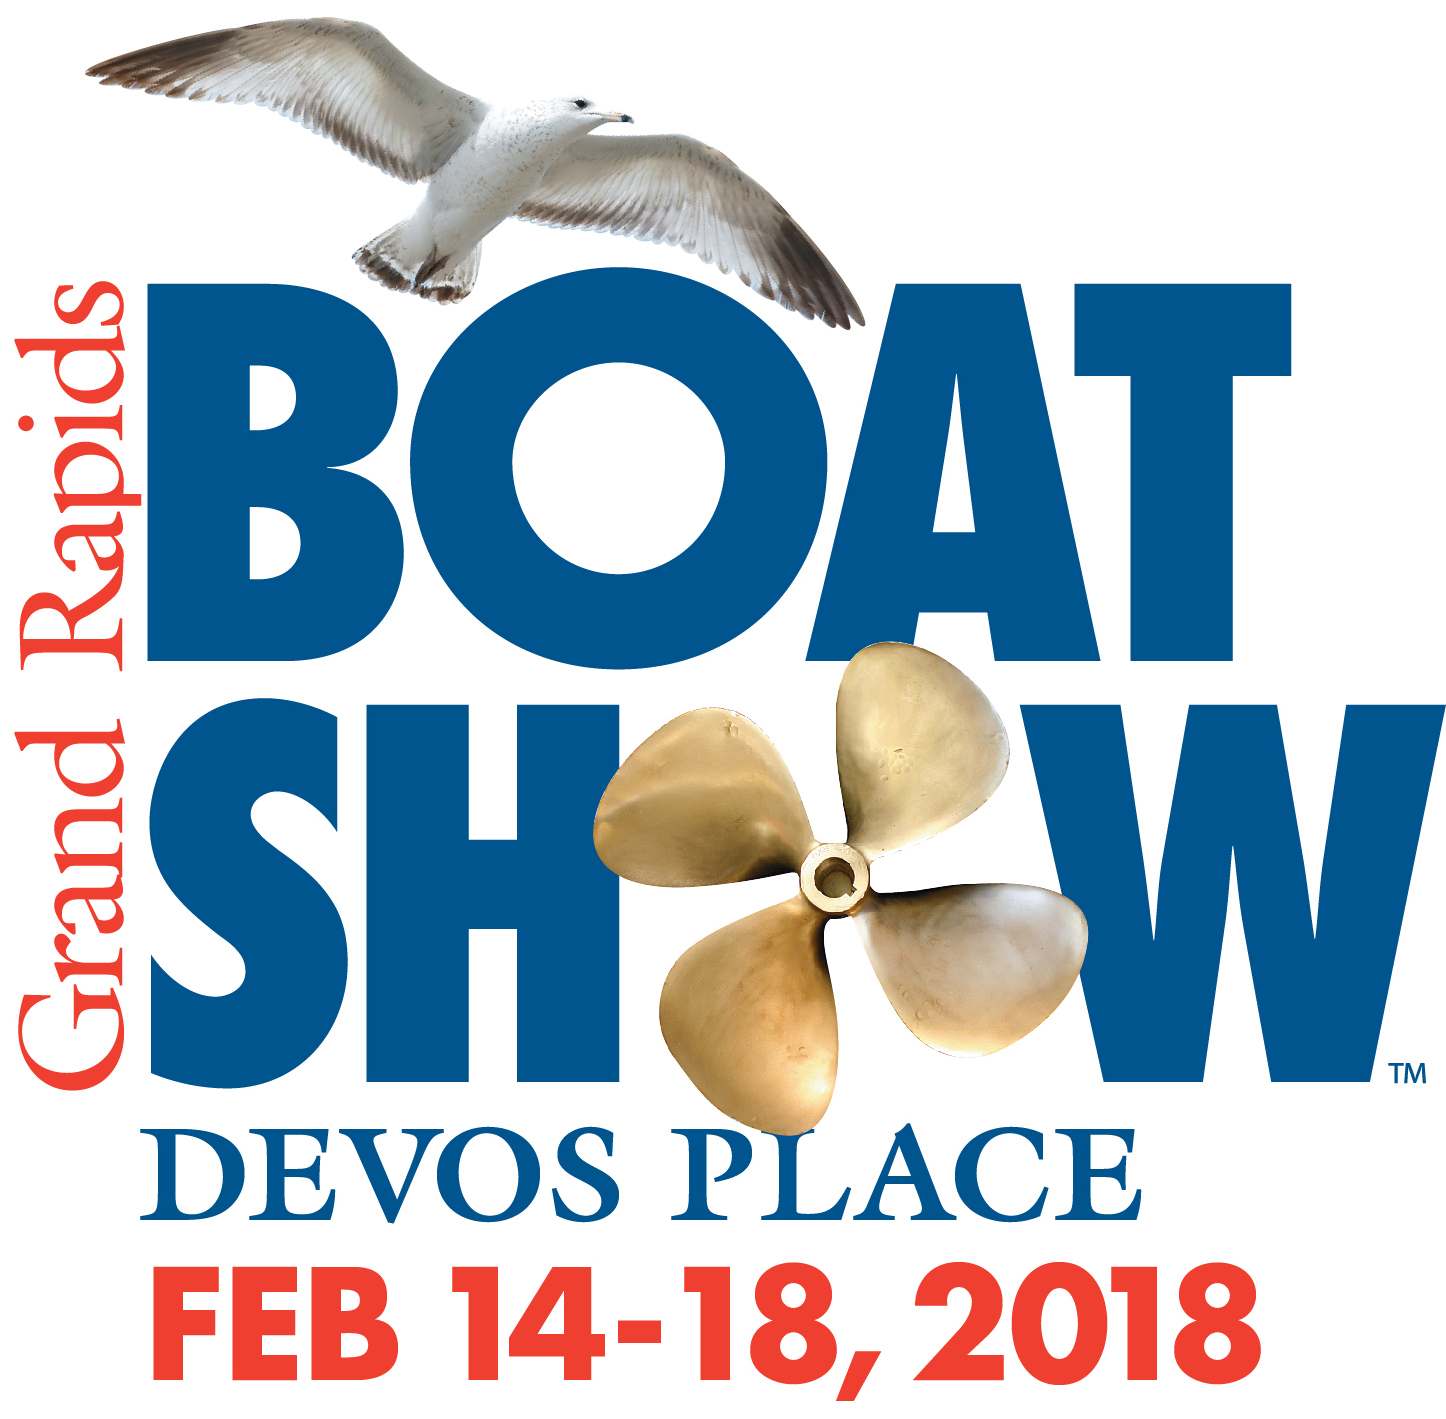 Grand Rapids Boat Show at the Devos Center